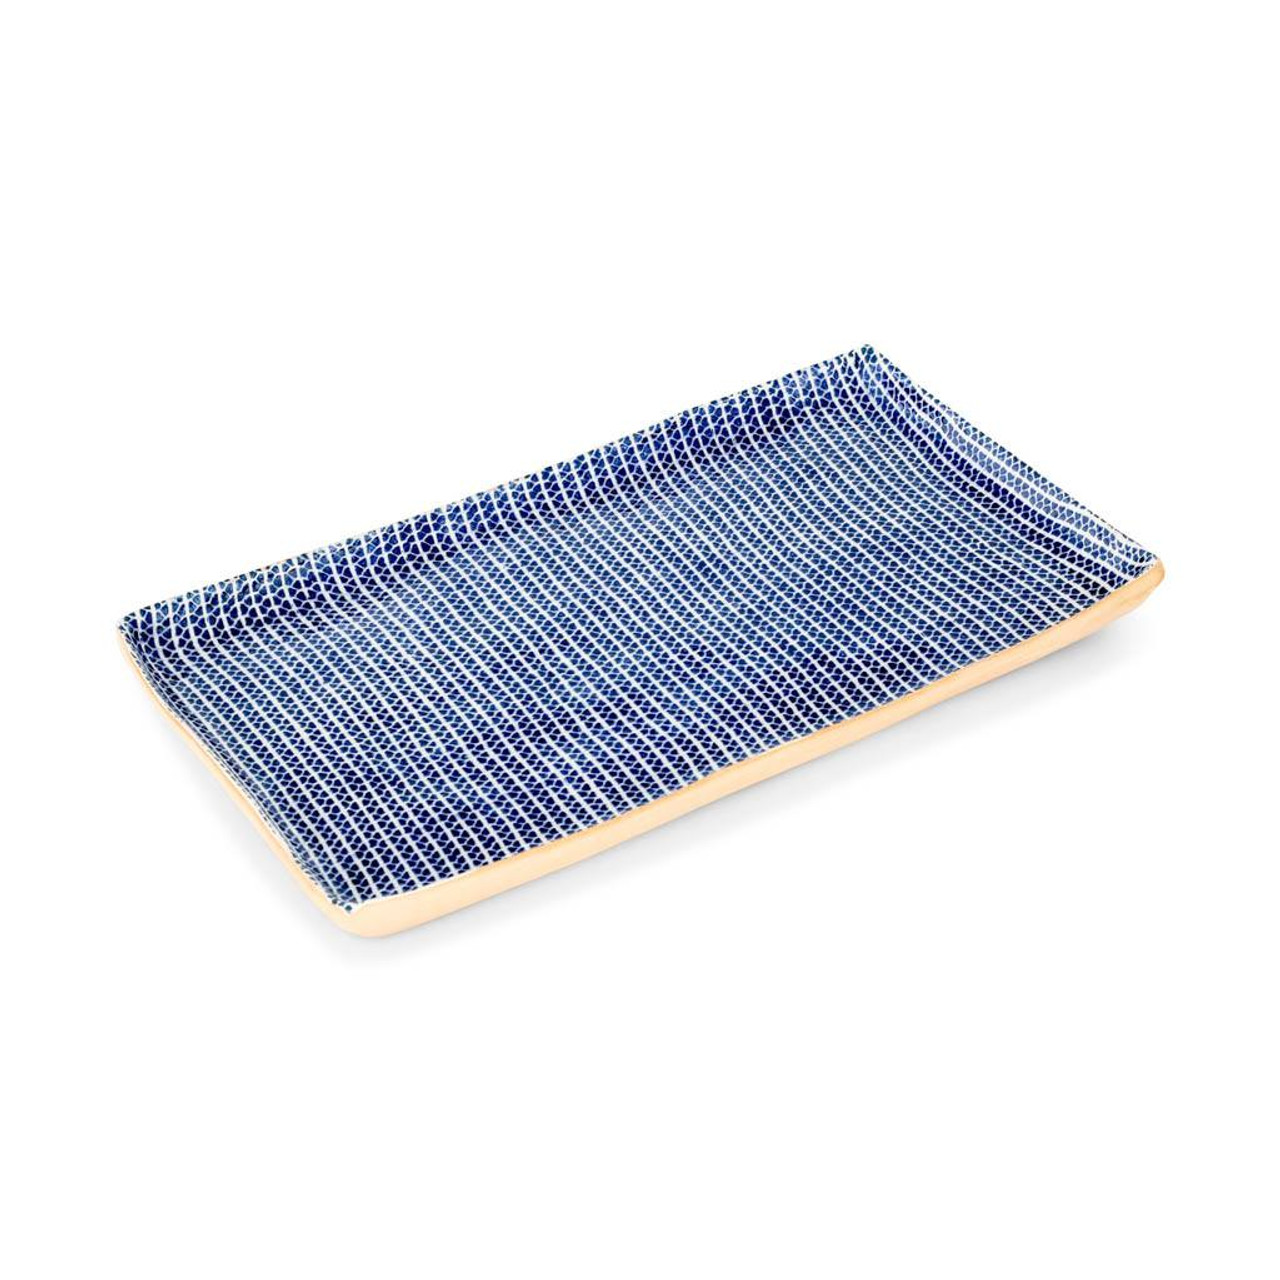 Terrafirma Ceramics Large Stacking Rectangular Tray (Cobalt/Strata)